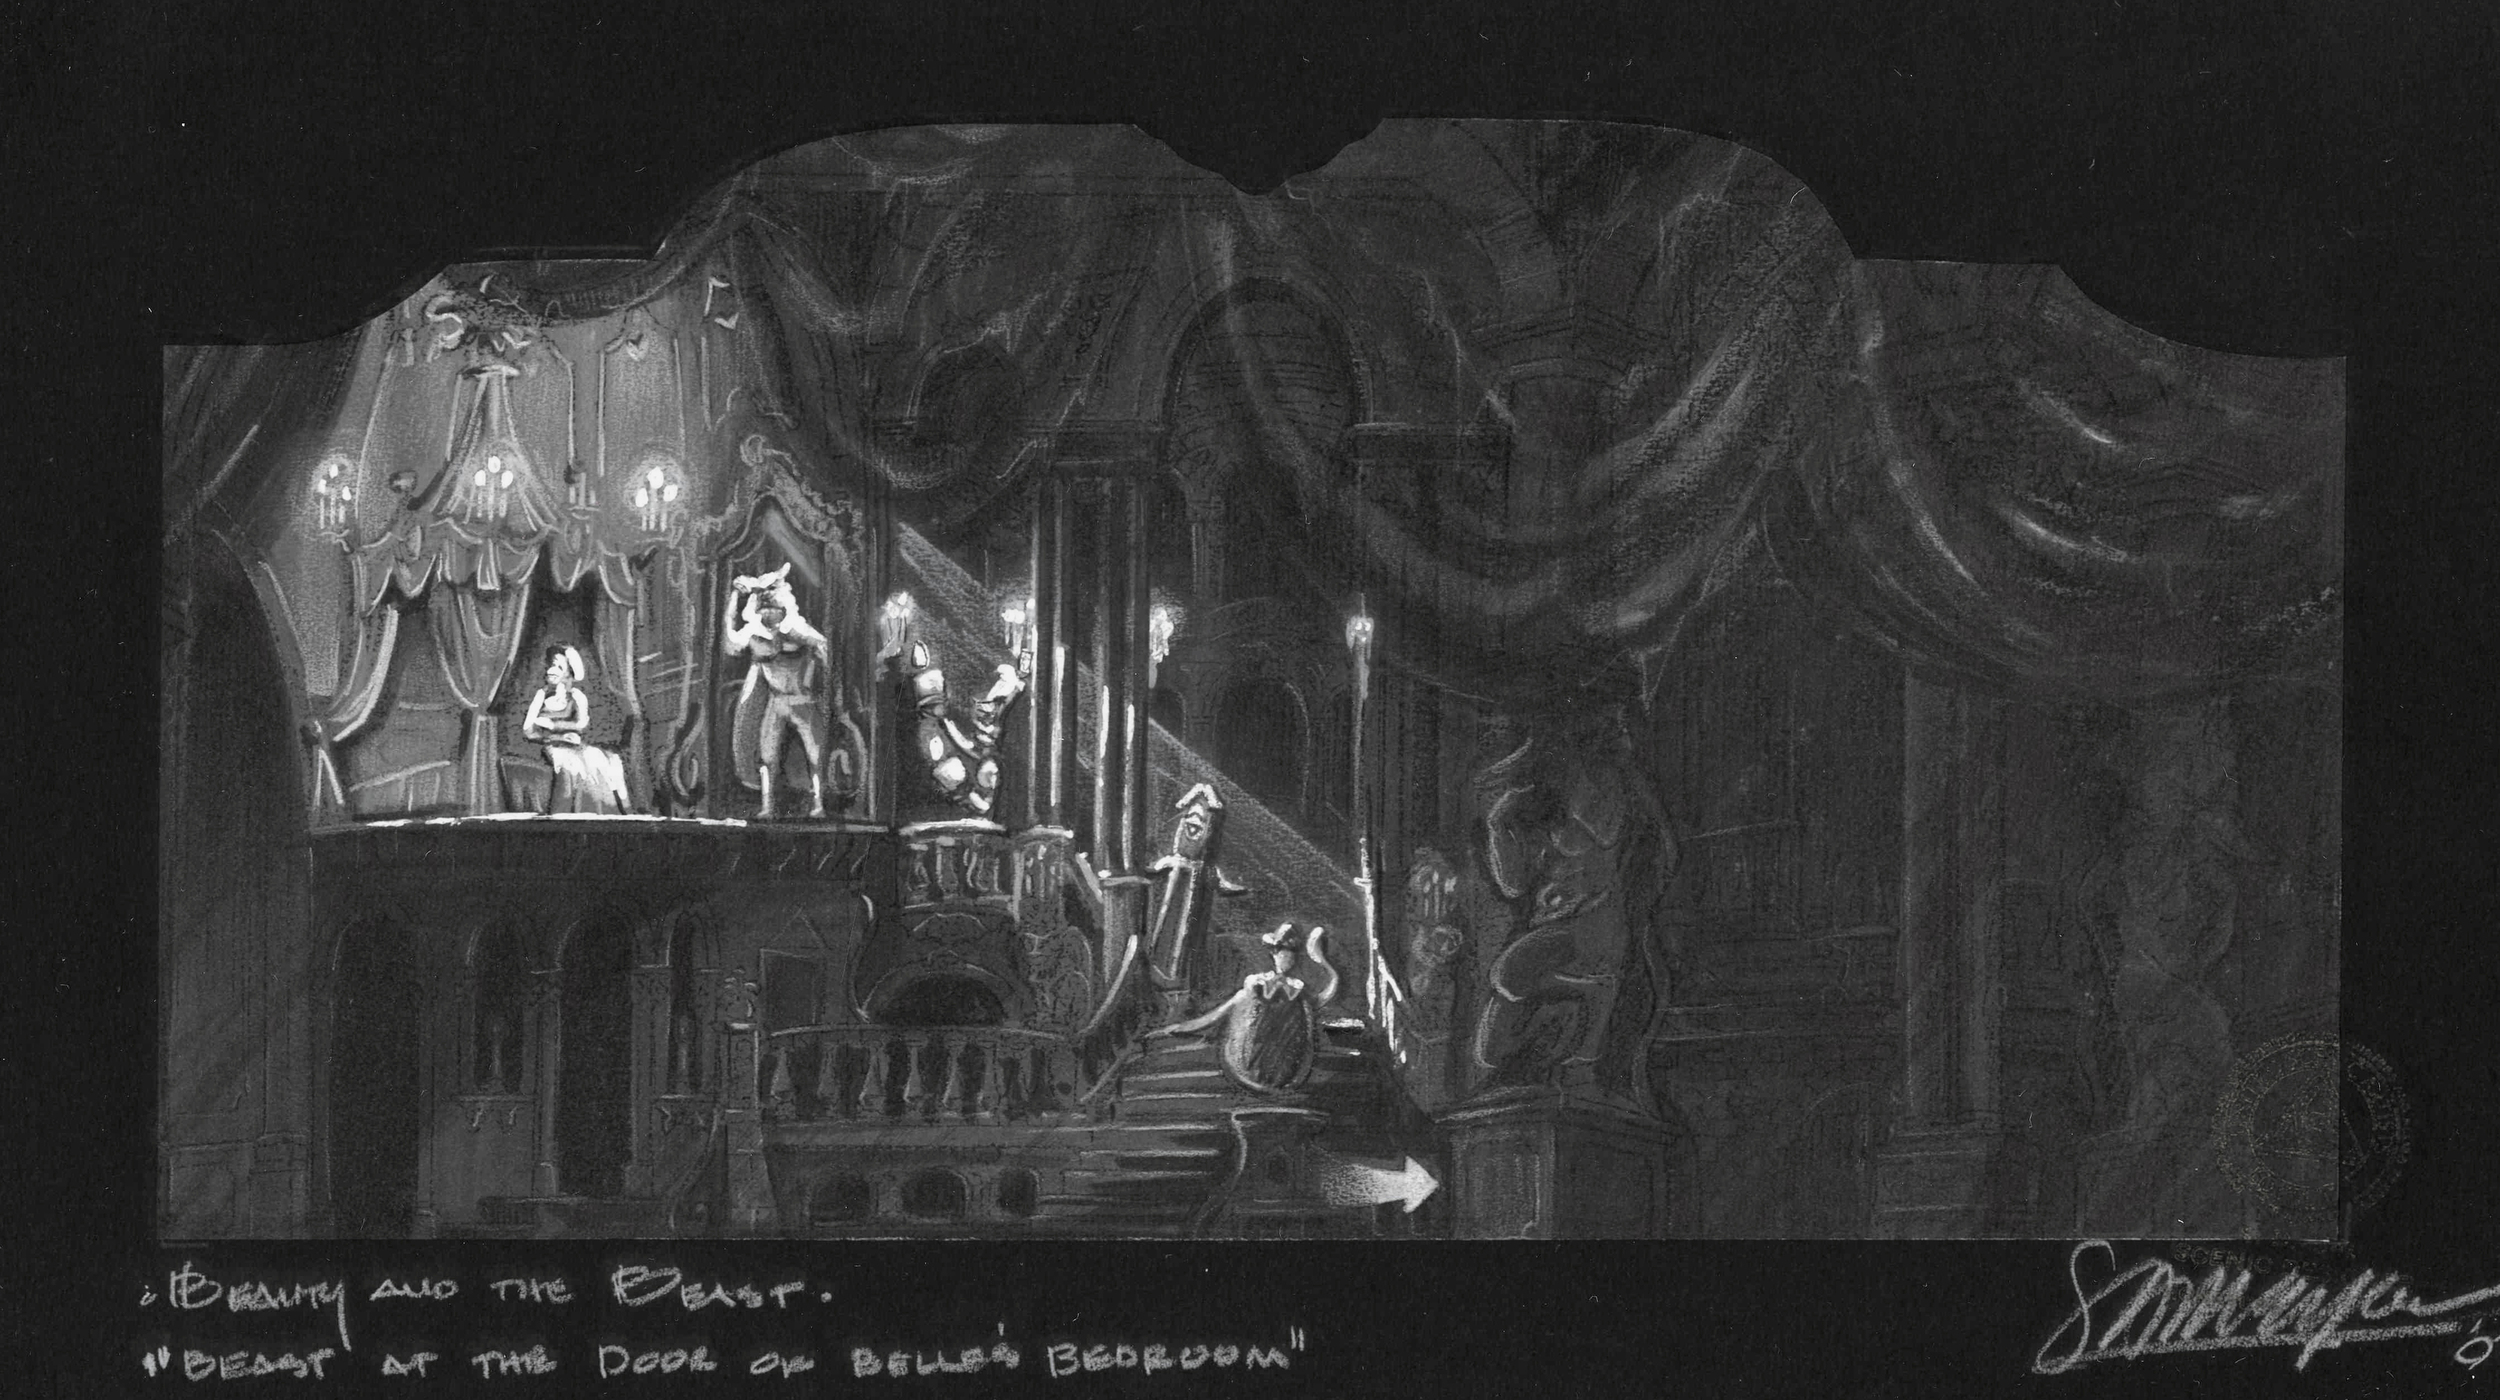 Belle's Bedroom. B&W concept rendering. Palace Theatre NYC